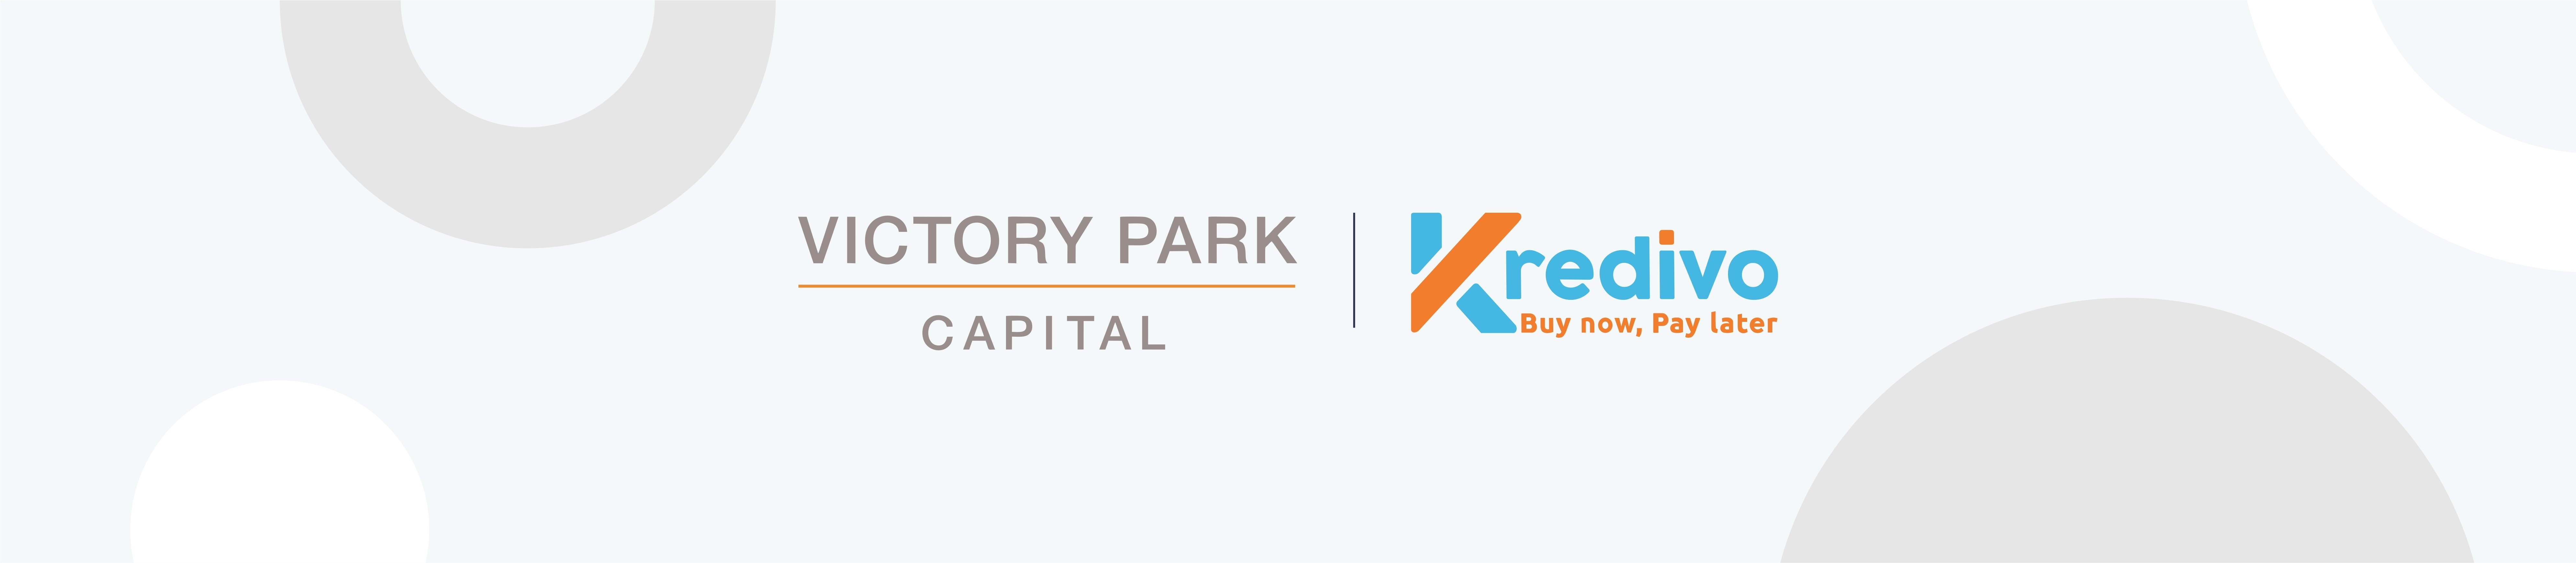 Kredivo, the Leading Digital Consumer Credit Platform in Southeast Asia, Announces Plans to Become a Publicly Traded Company via Merger with VPC Impact Acquisition Holdings II